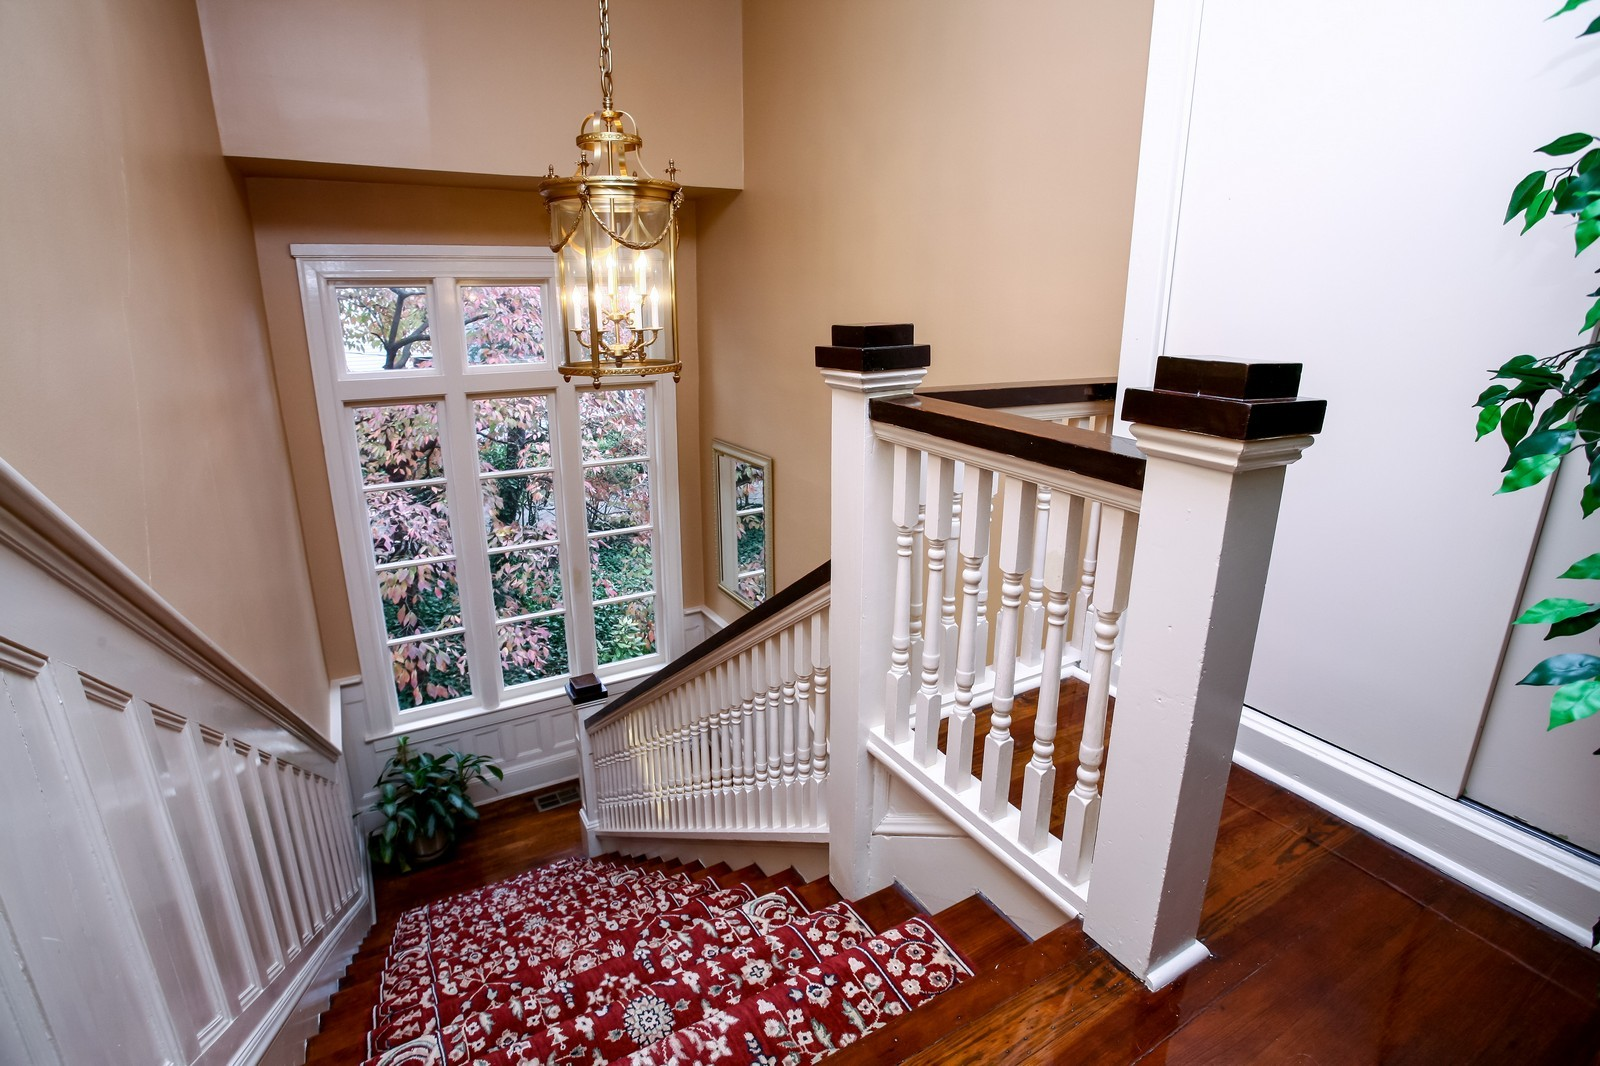 Real Estate Photography - 414 N 14th St, Lanett, AL, 36863 - Staircase